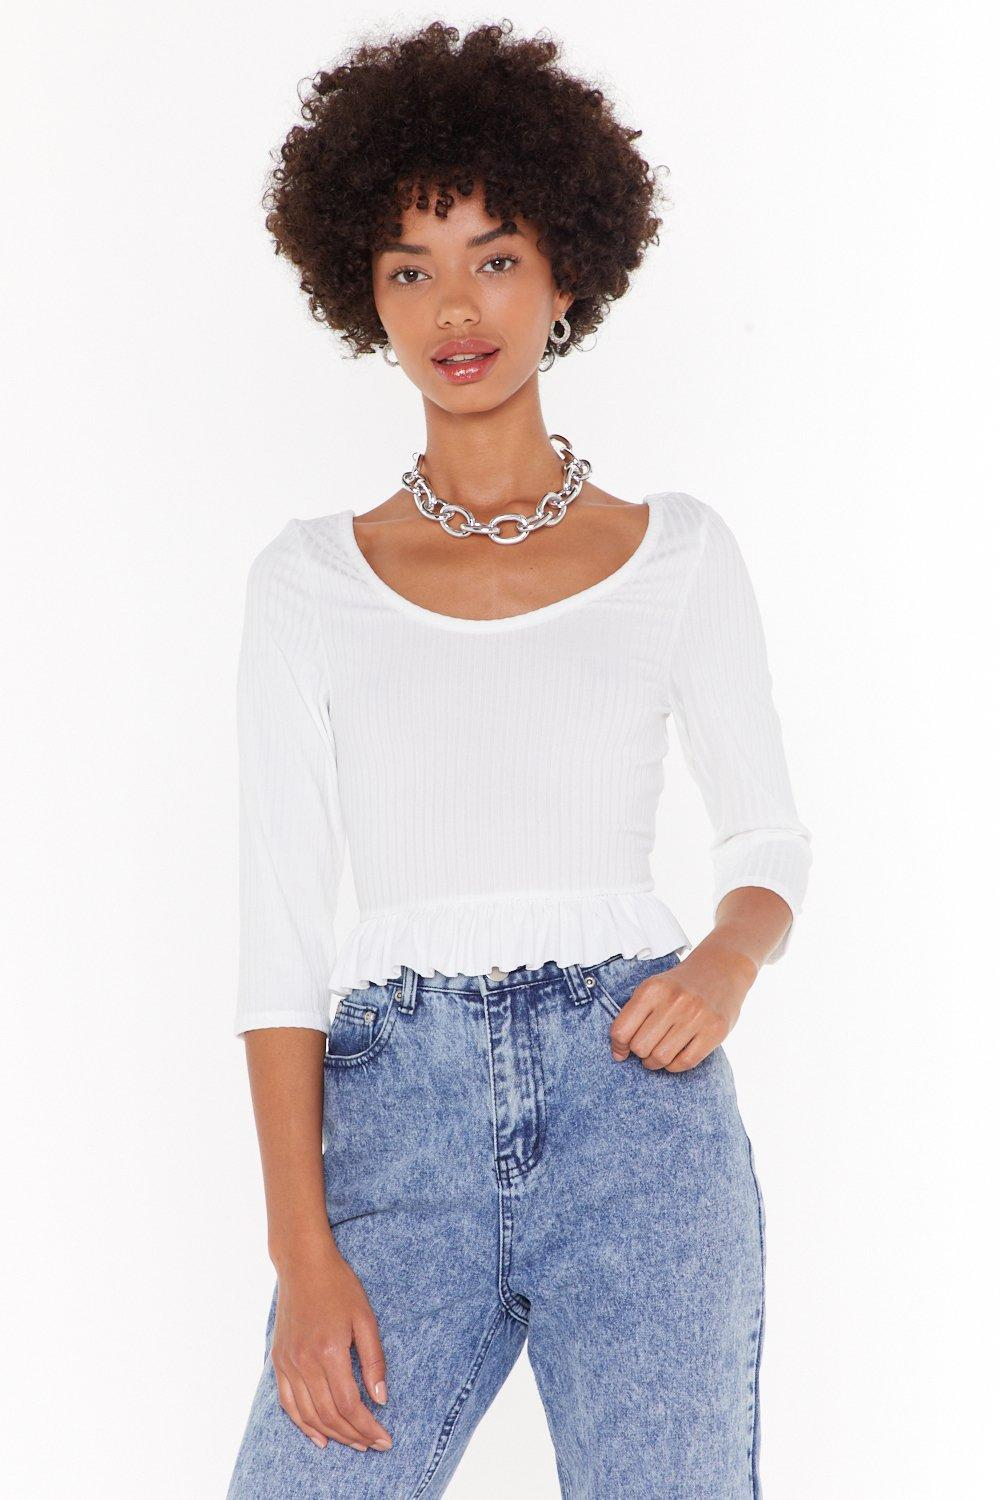 You're Frill The One Ribbed Crop Top by Nasty Gal